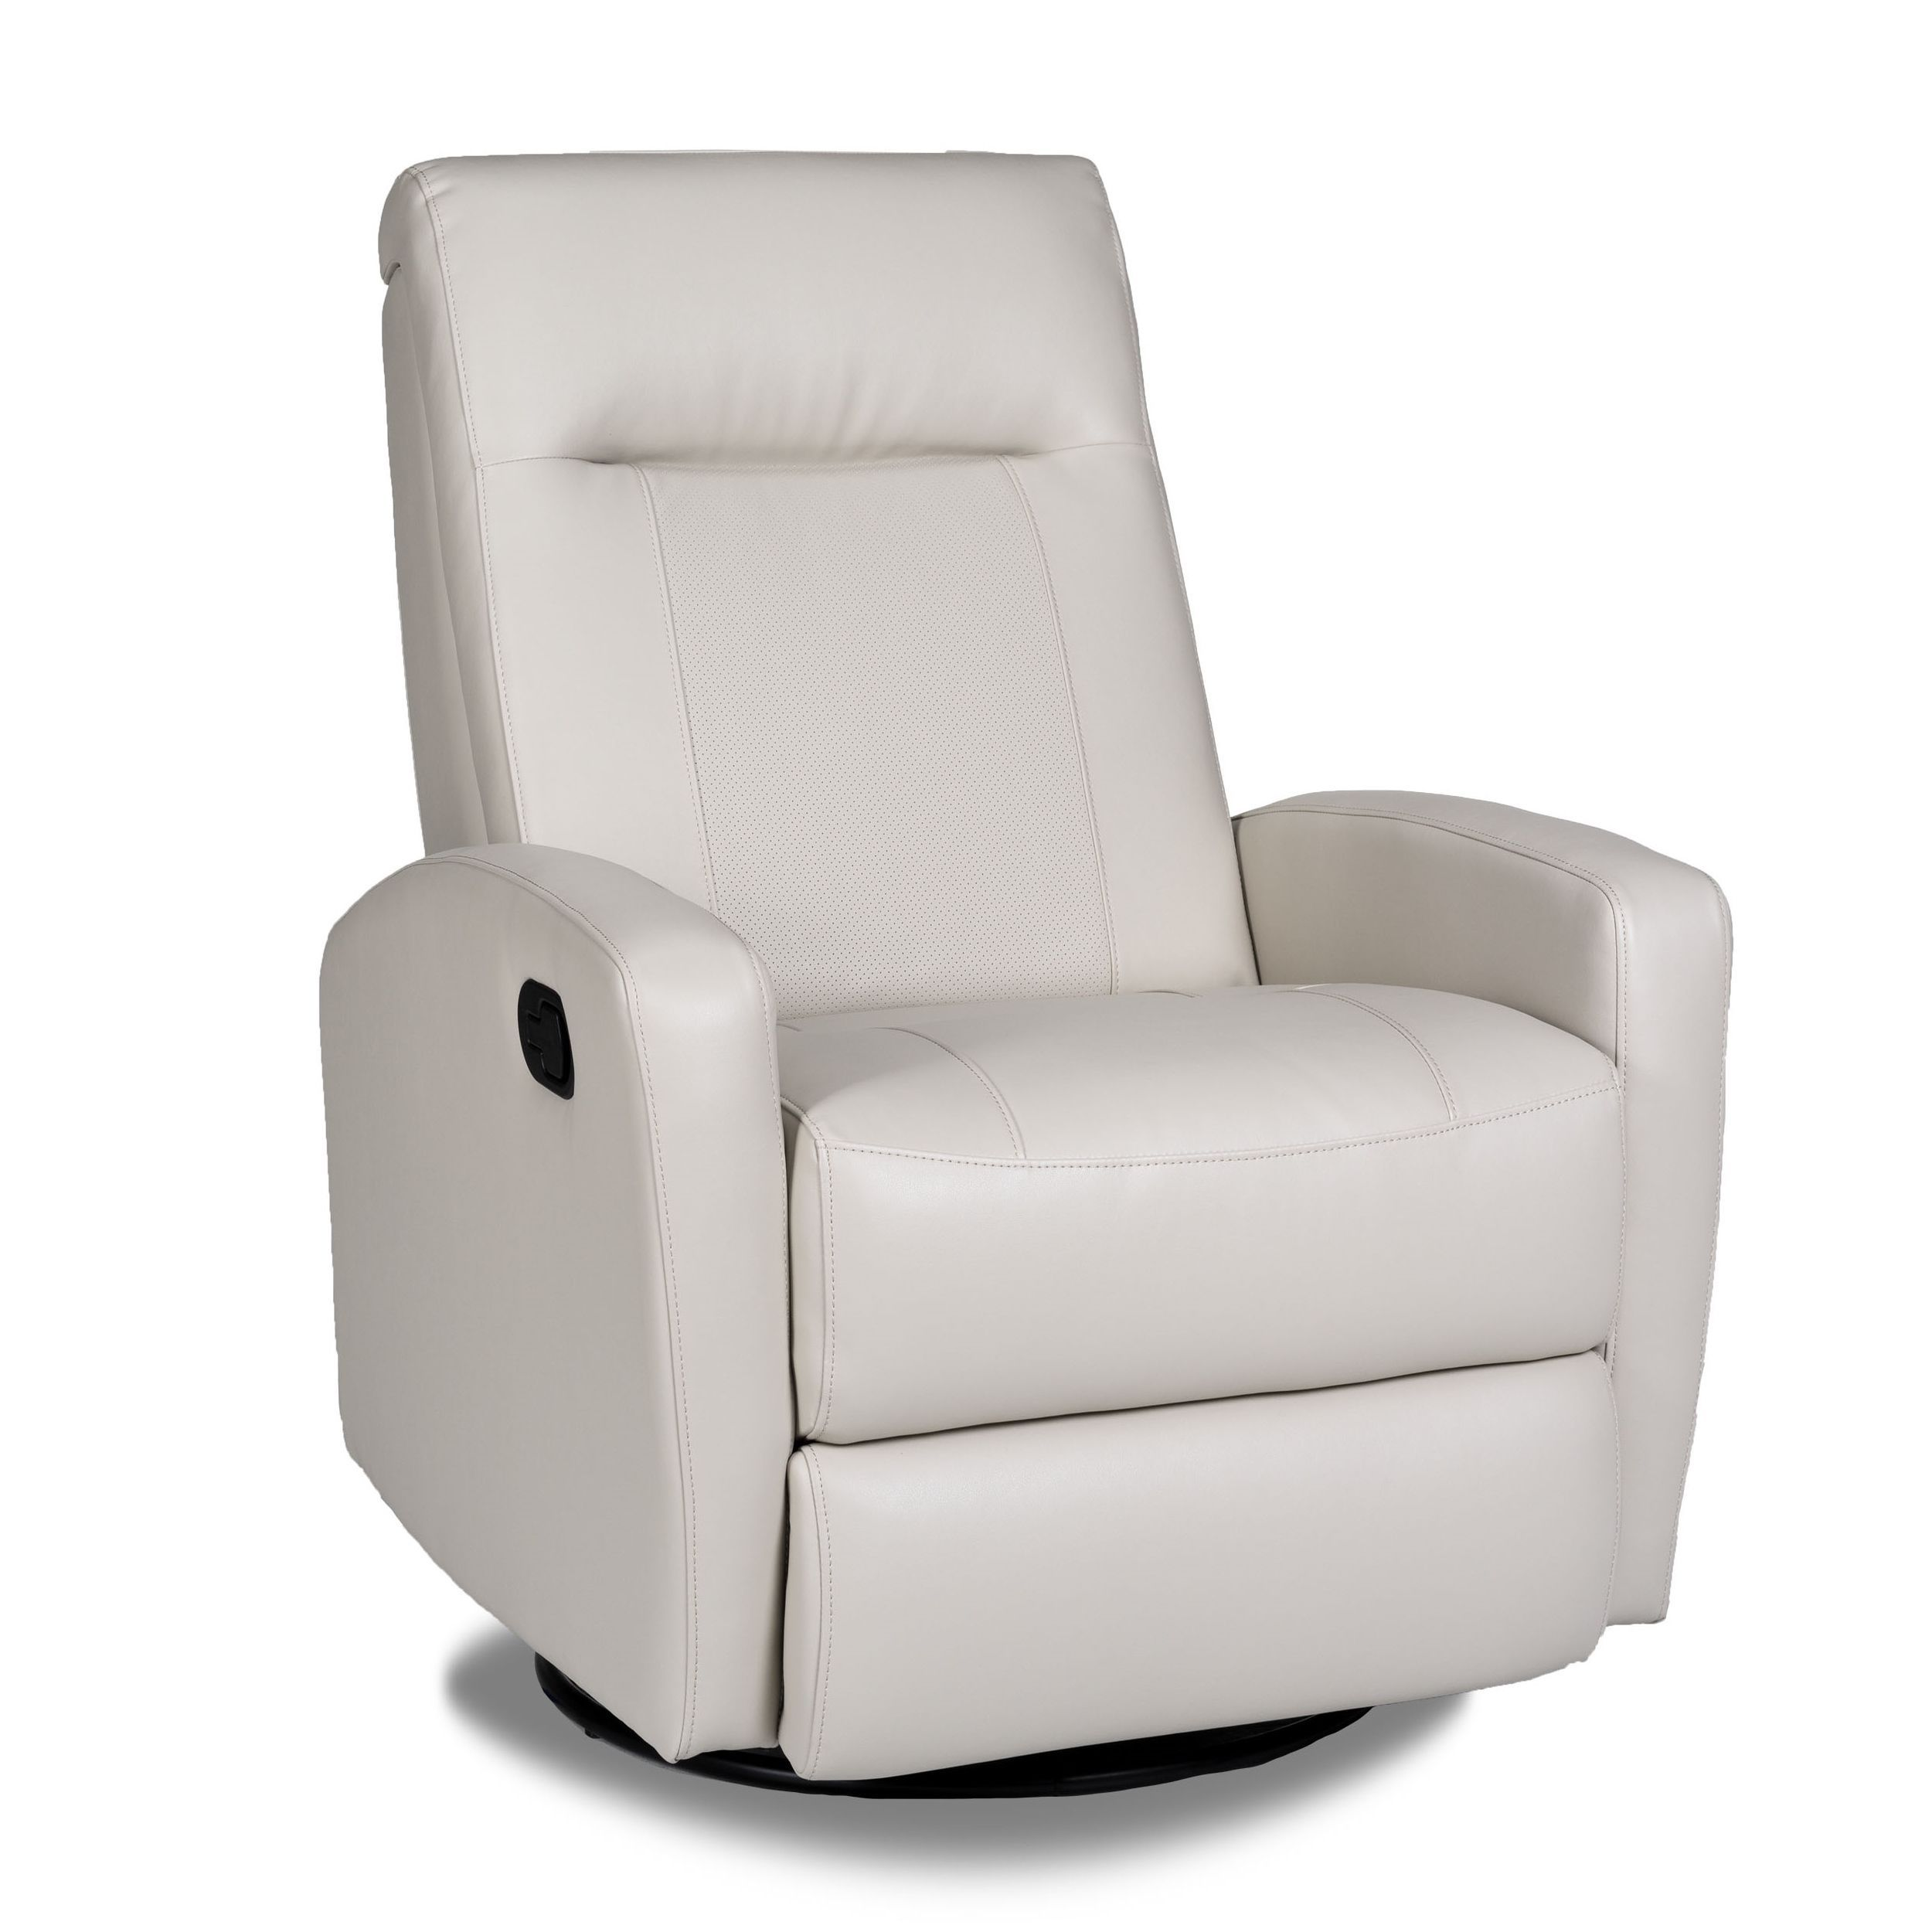 Stefan Bonded Leather Swivel Glider Recliner - Overstock™ Shopping ...